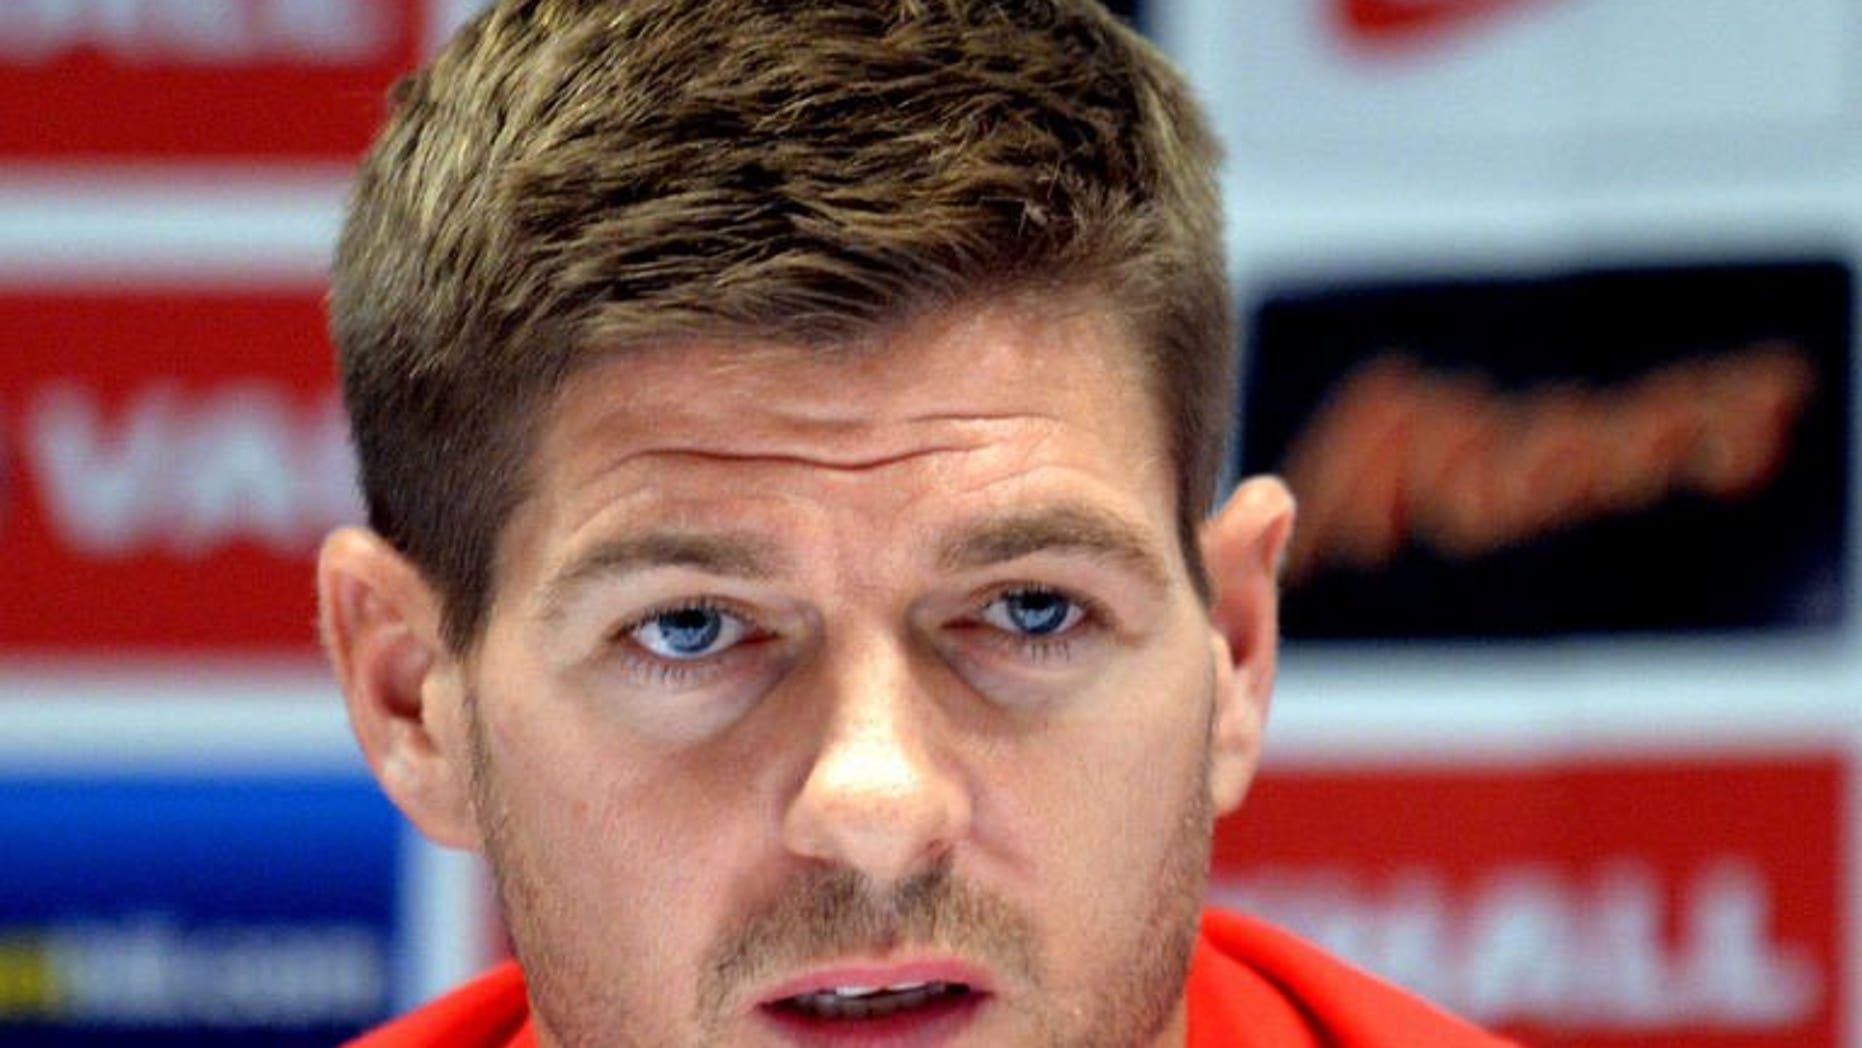 England's national football team captain Steven Gerrard takes part in a press conference in Kiev on September 9, 2013 on the eve of their World cup qualifier against Ukraine.